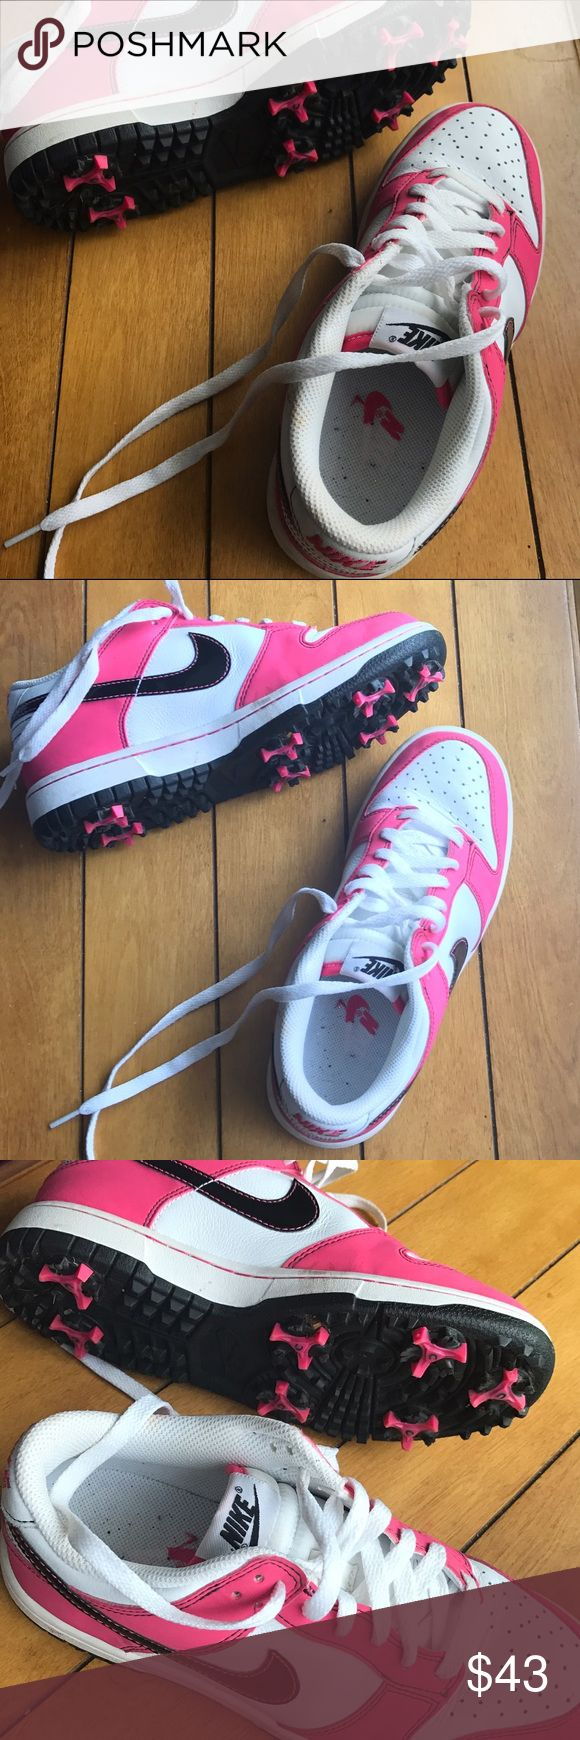 EUC • Pink & black Nike golf shoes/cleats These have only been worn a few times, they are in EUC! super comfortable. bright pink and black.  Size 6.5 LADIES  #nike #air #swoosh #golf #sneakers #cleats #likenew #euc #pink #black Nike Shoes Athletic Shoes